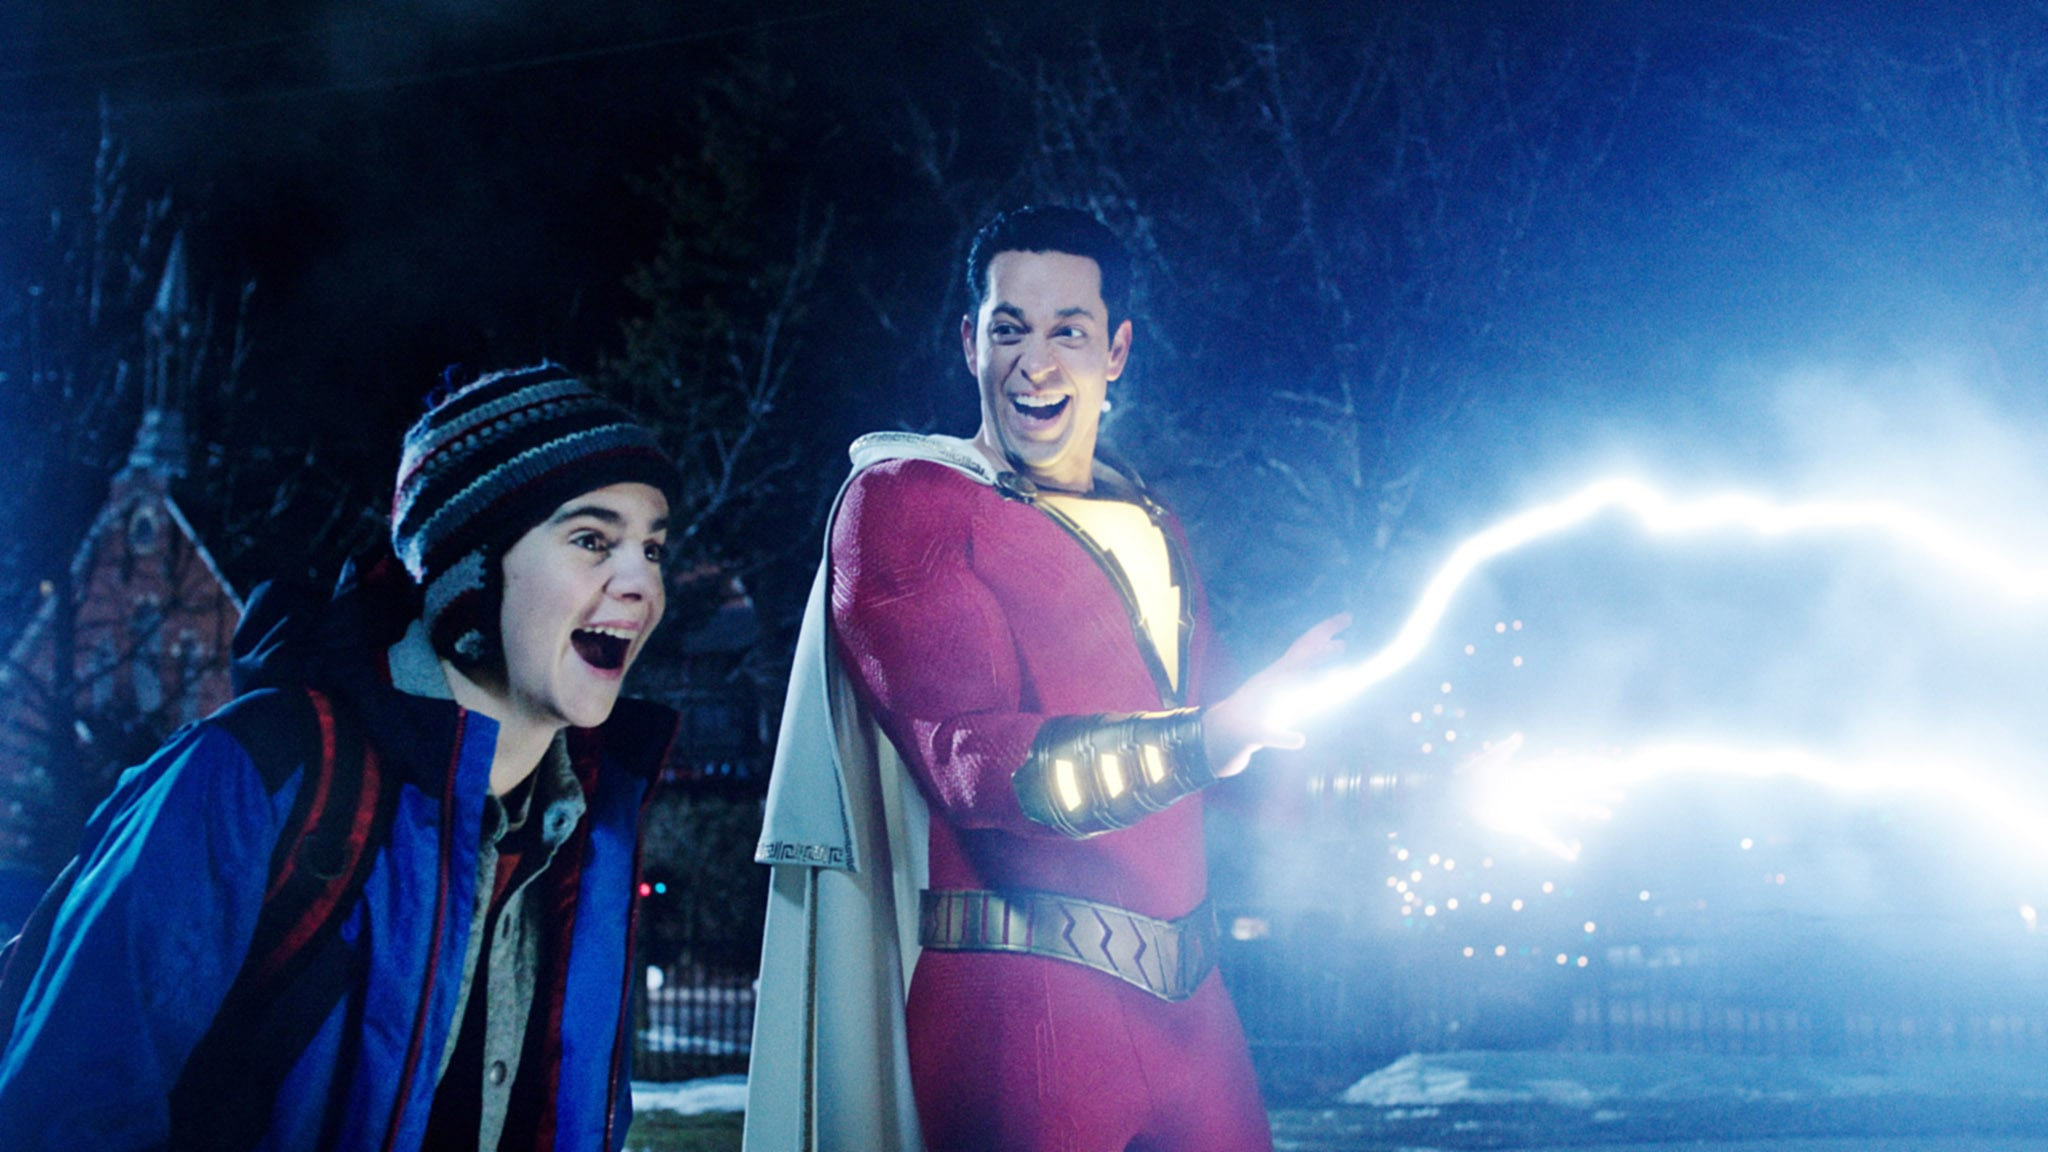 SHAZAM!, from left: Jack Dylan Grazer, Zachary Levi (as Shazam), 2019.  Warner Brothers / courtesy Everett Collection